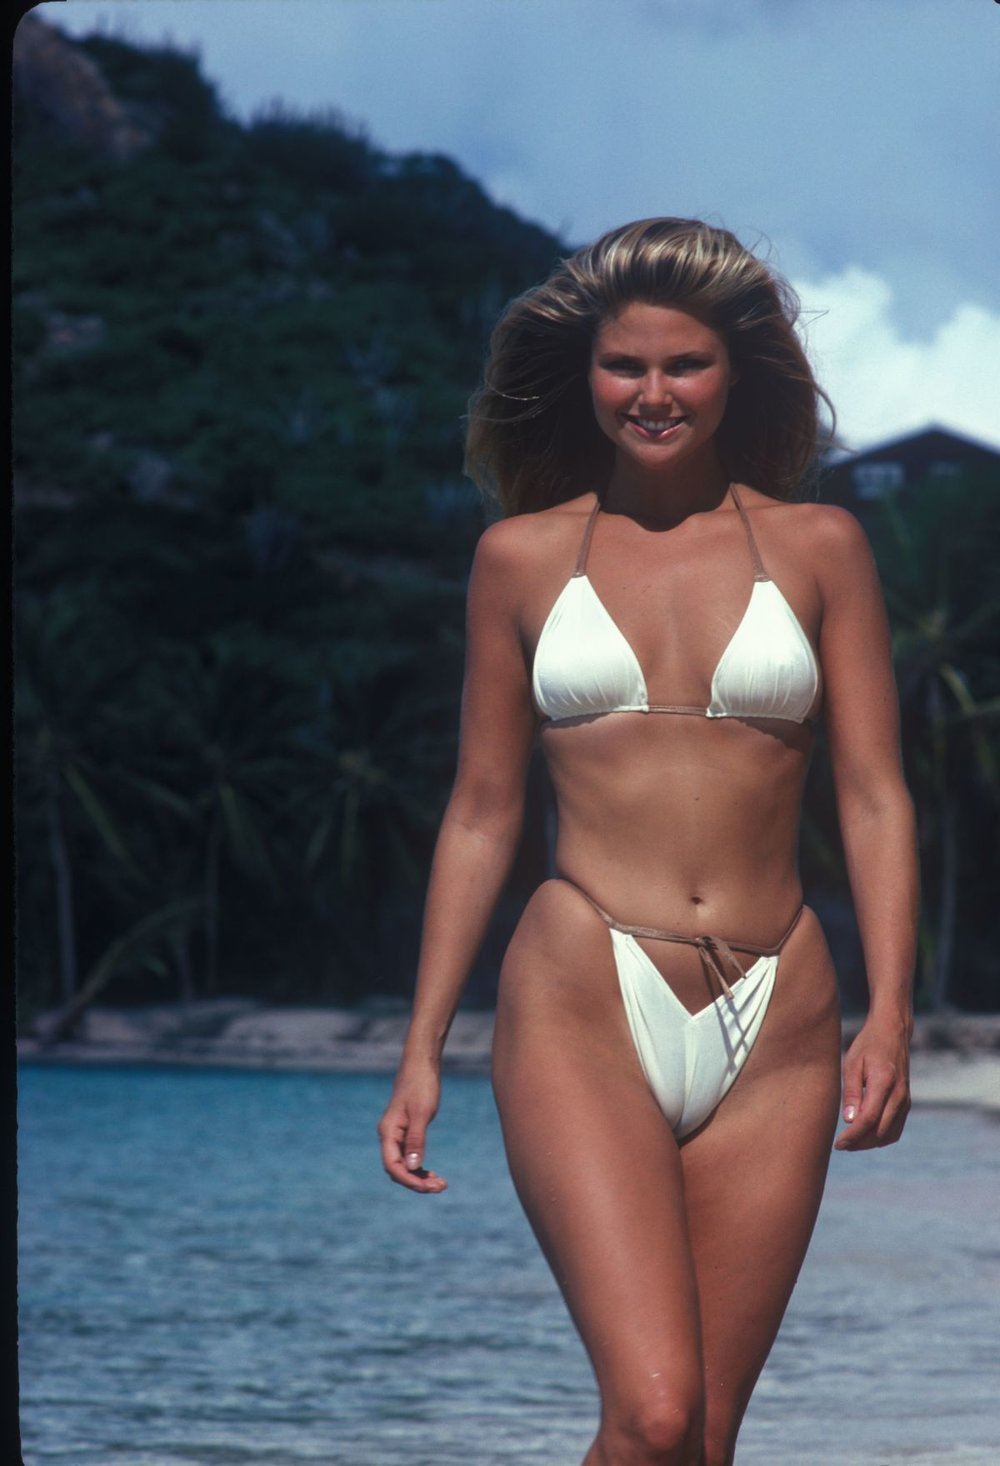 Photo taken from Sports Illustrated's 1980 Swimsuit Issue - Christie Brinkley